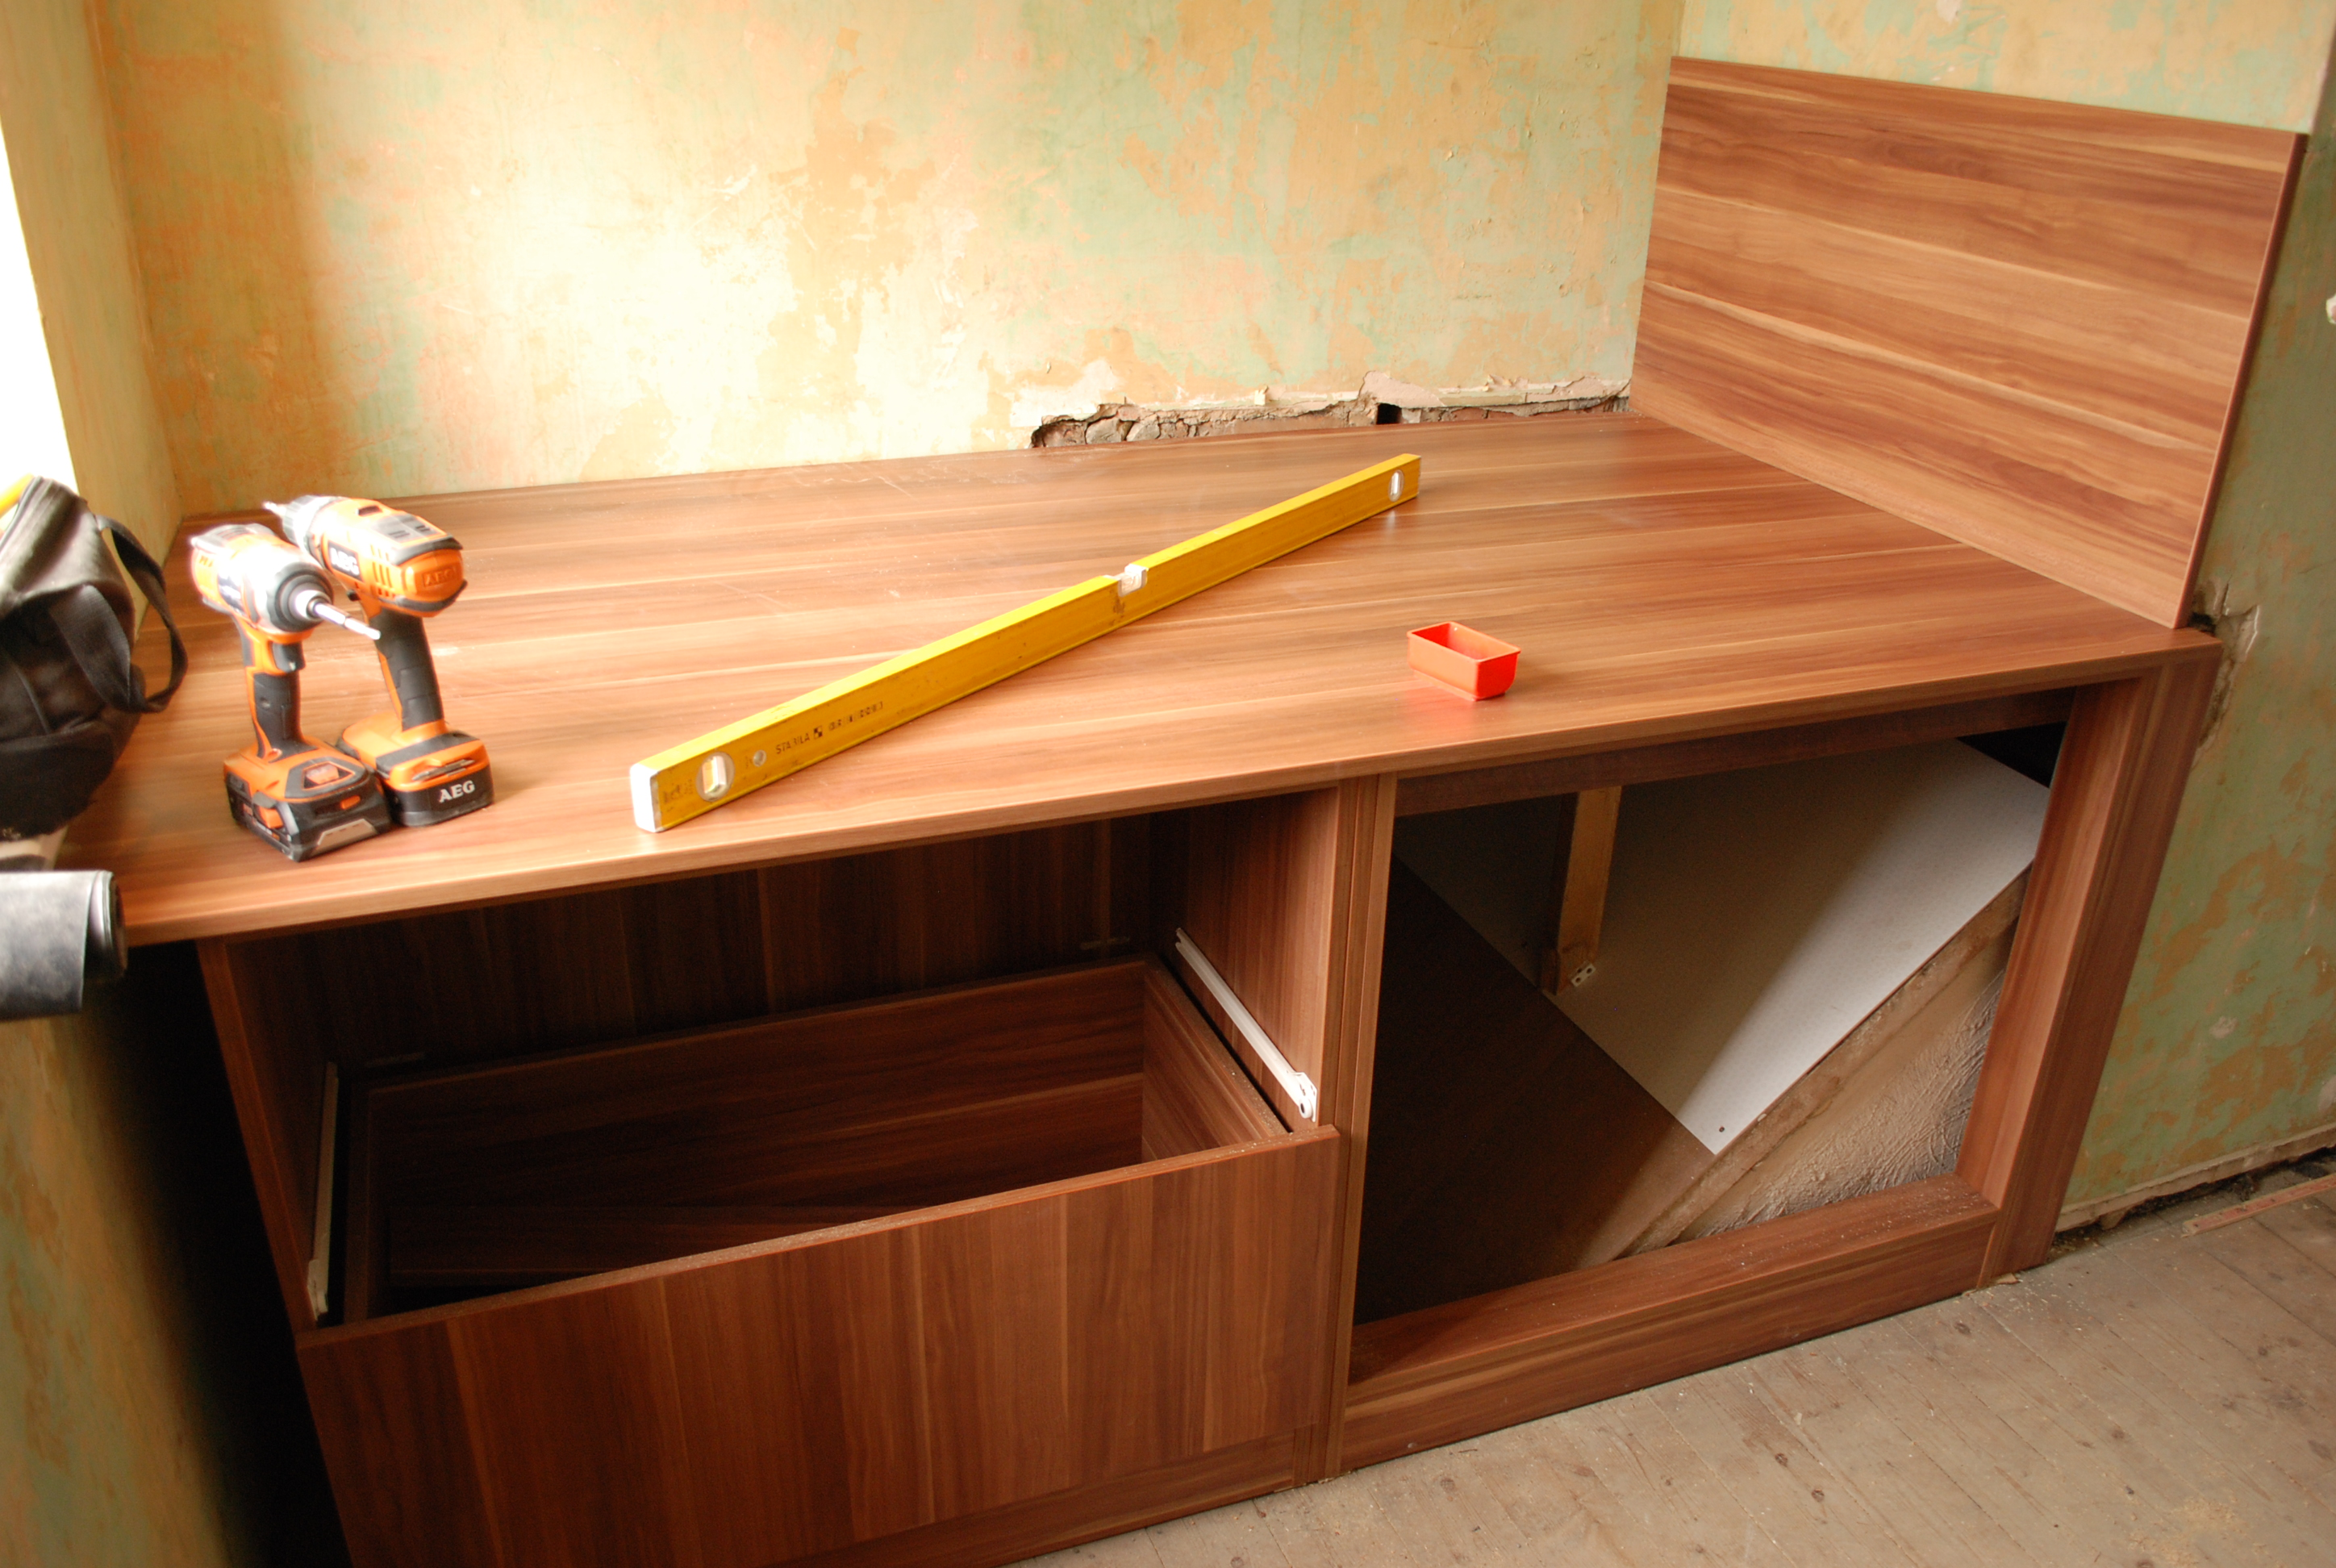 Photo 5 The Cabin Bed With Drawers Taking Shape